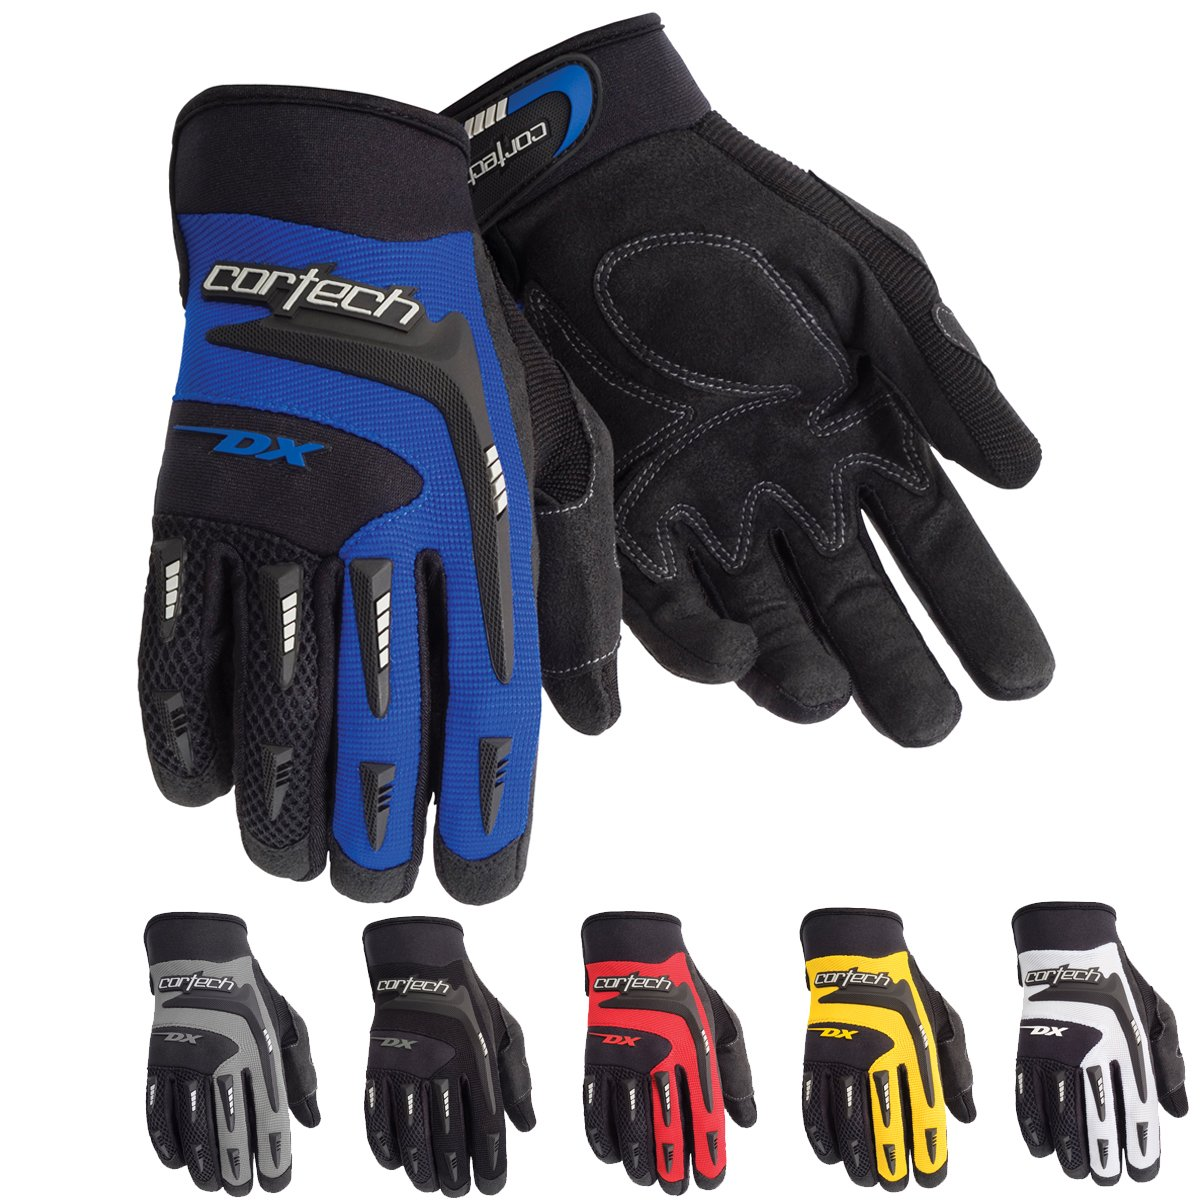 Motorcycle gloves palm protection - The Cortech Dx 2 Motorcycle Gloves Are Designed To Be A Lightweight And Rugged Option For Bikers Who Want A Stylish Glove Option To Fit Their Gear